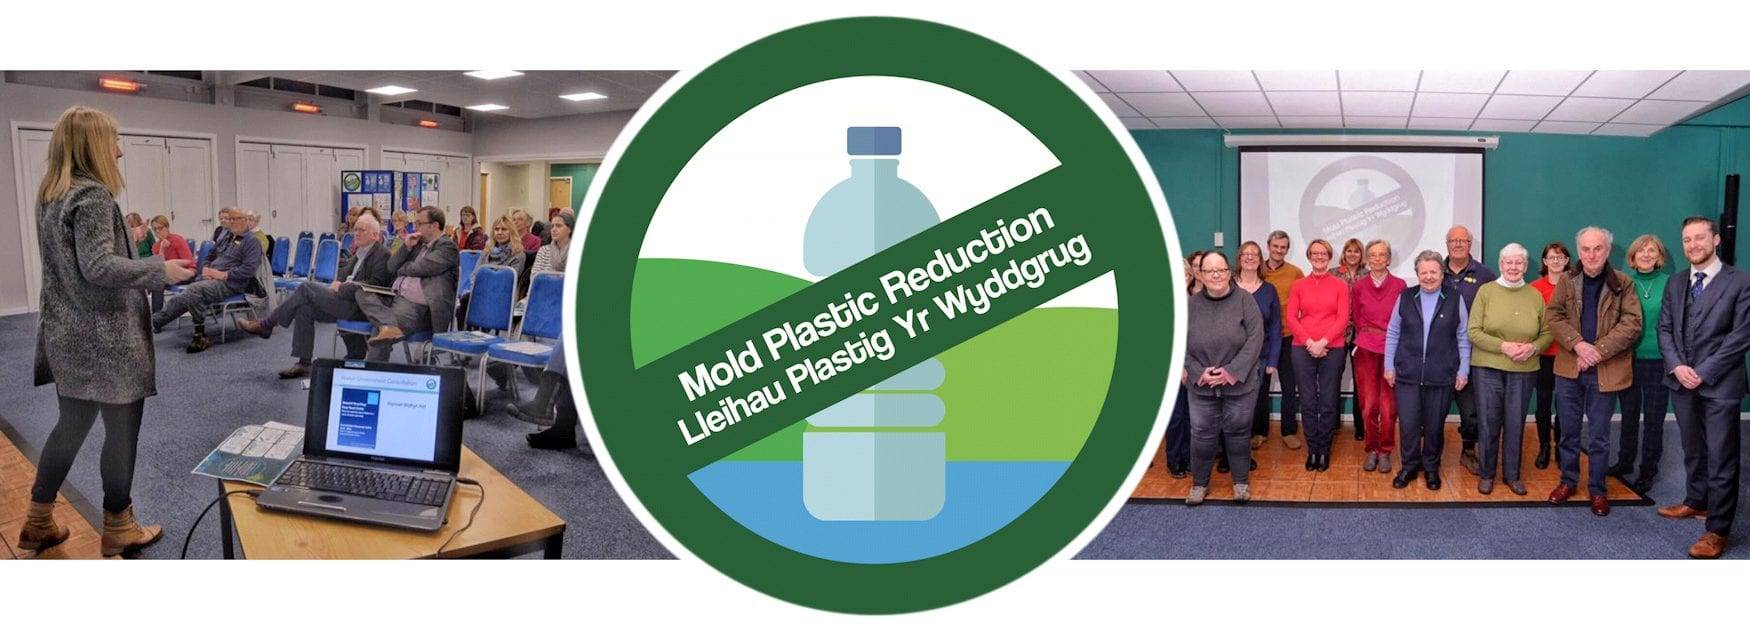 Header image for Who's Who page showing meeting addressed by Hannah Blythyn MS and members of Mold Plastic Reduction group